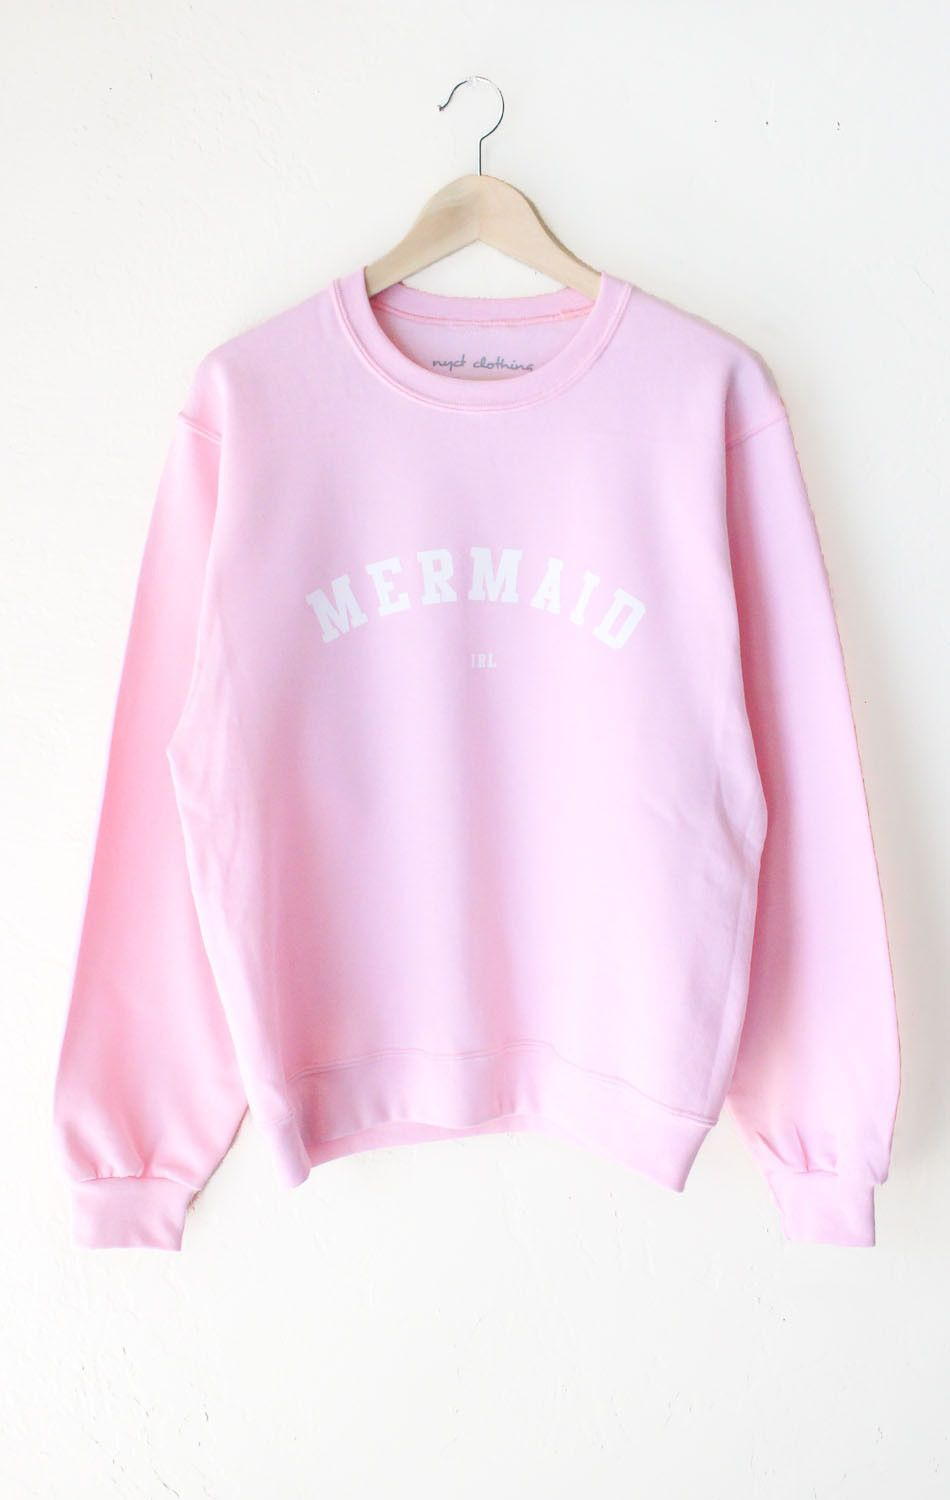 31961bb6 Description Details: Super cozy oversized sweatshirt in pink with print  featuring 'Mermaid IRL'. Brand: NYCT Clothing. Unisex, oversized/loose fit.